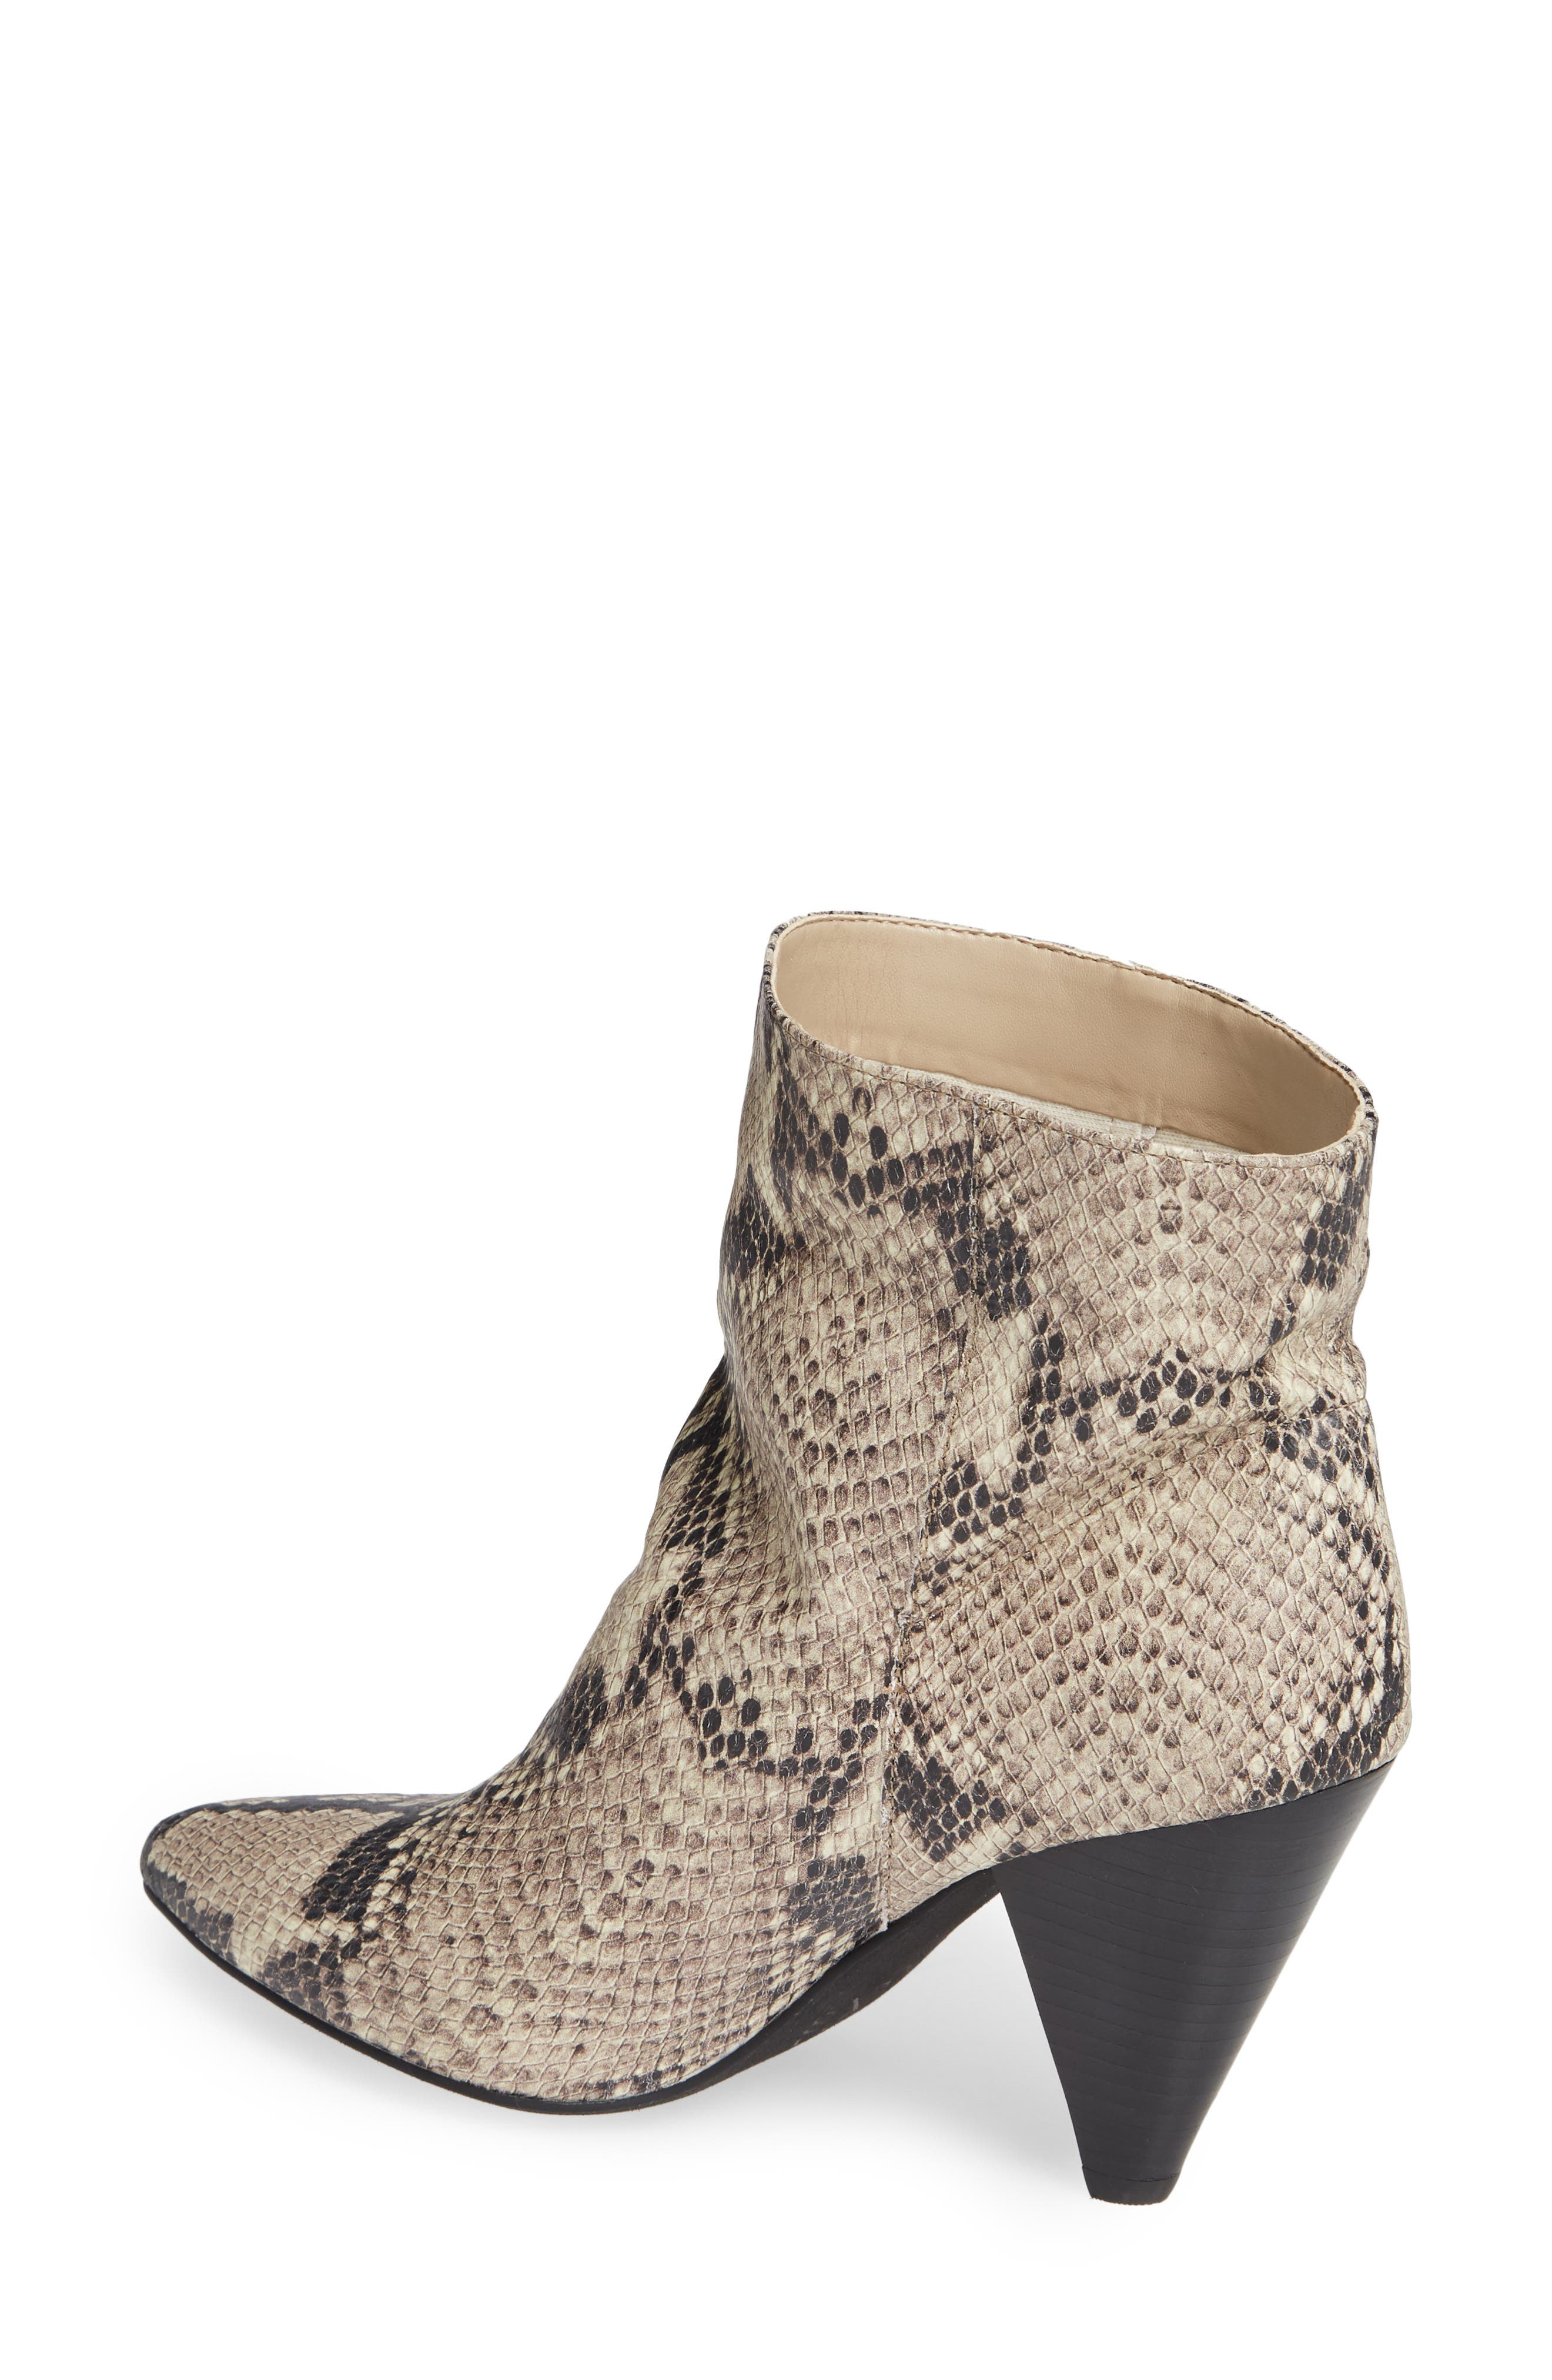 Scope Bootie,                             Alternate thumbnail 2, color,                             PRINTED NATURAL SNAKE LEATHER